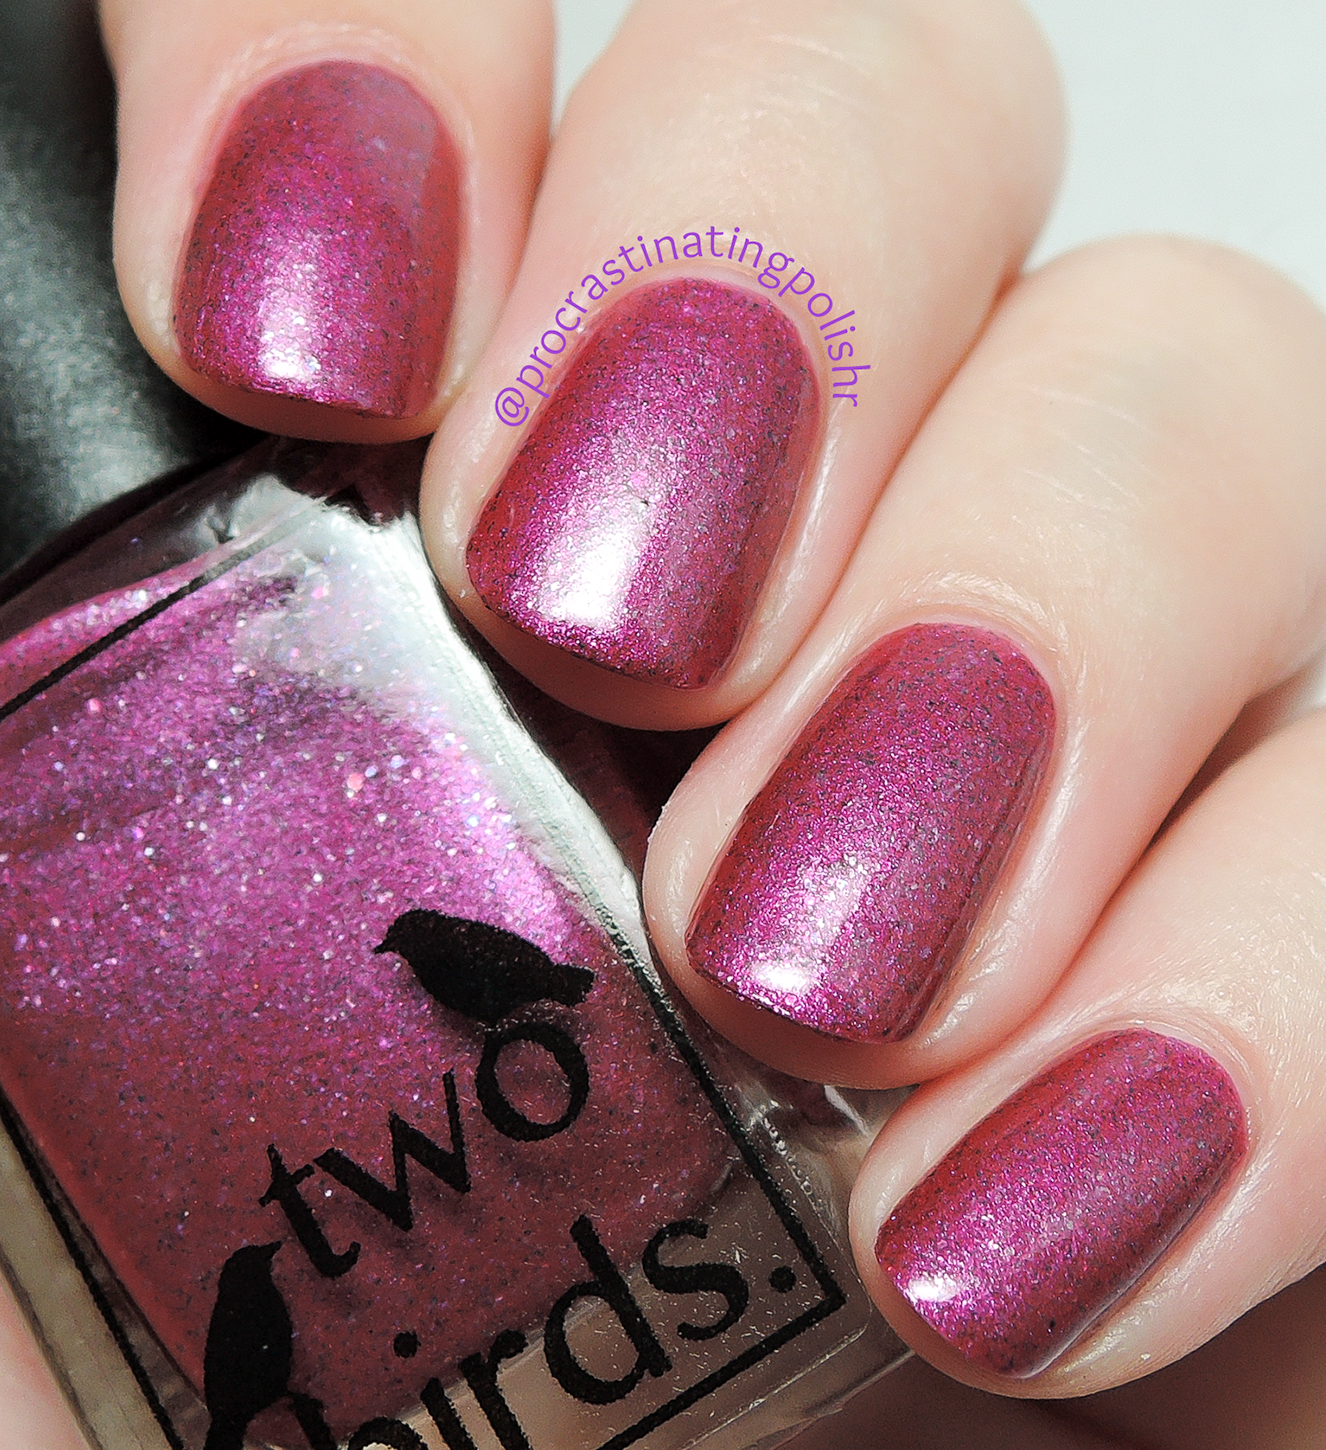 Two Birds Lacquer - Carnation | First Anniversary collection